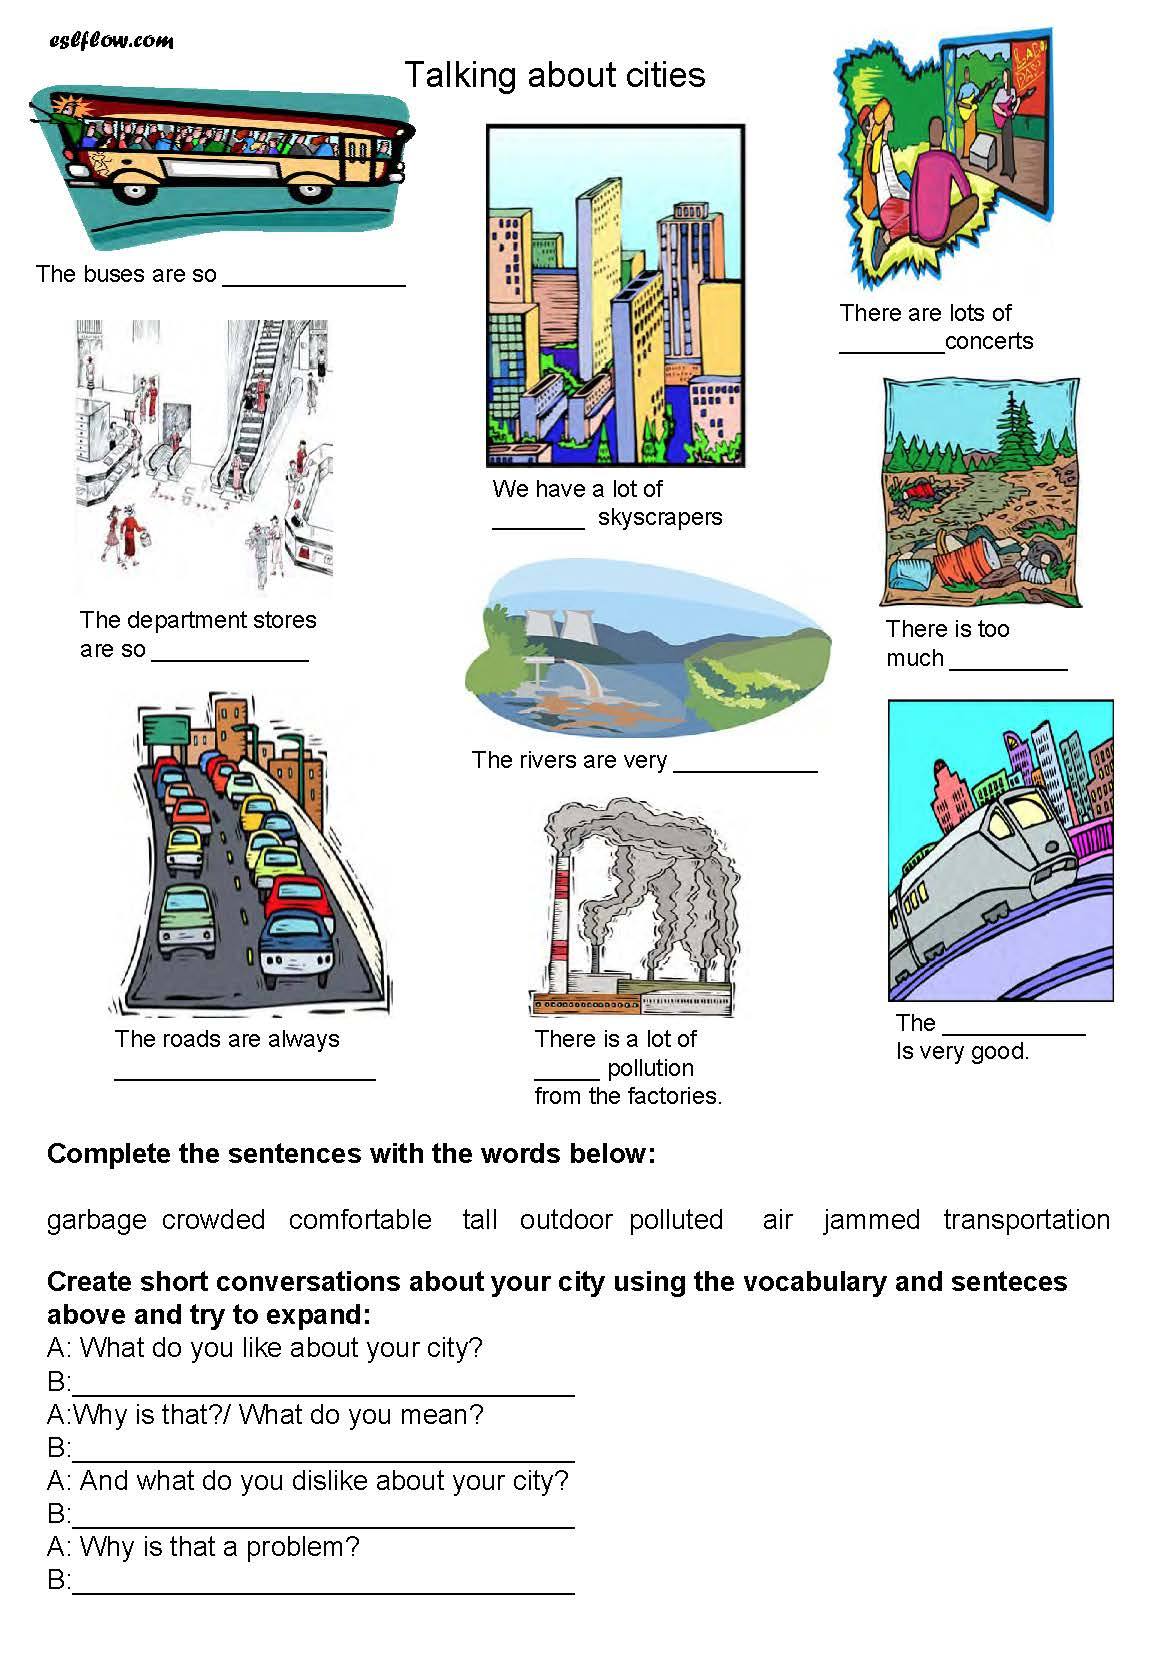 Talking About Cities Esl Worksheet